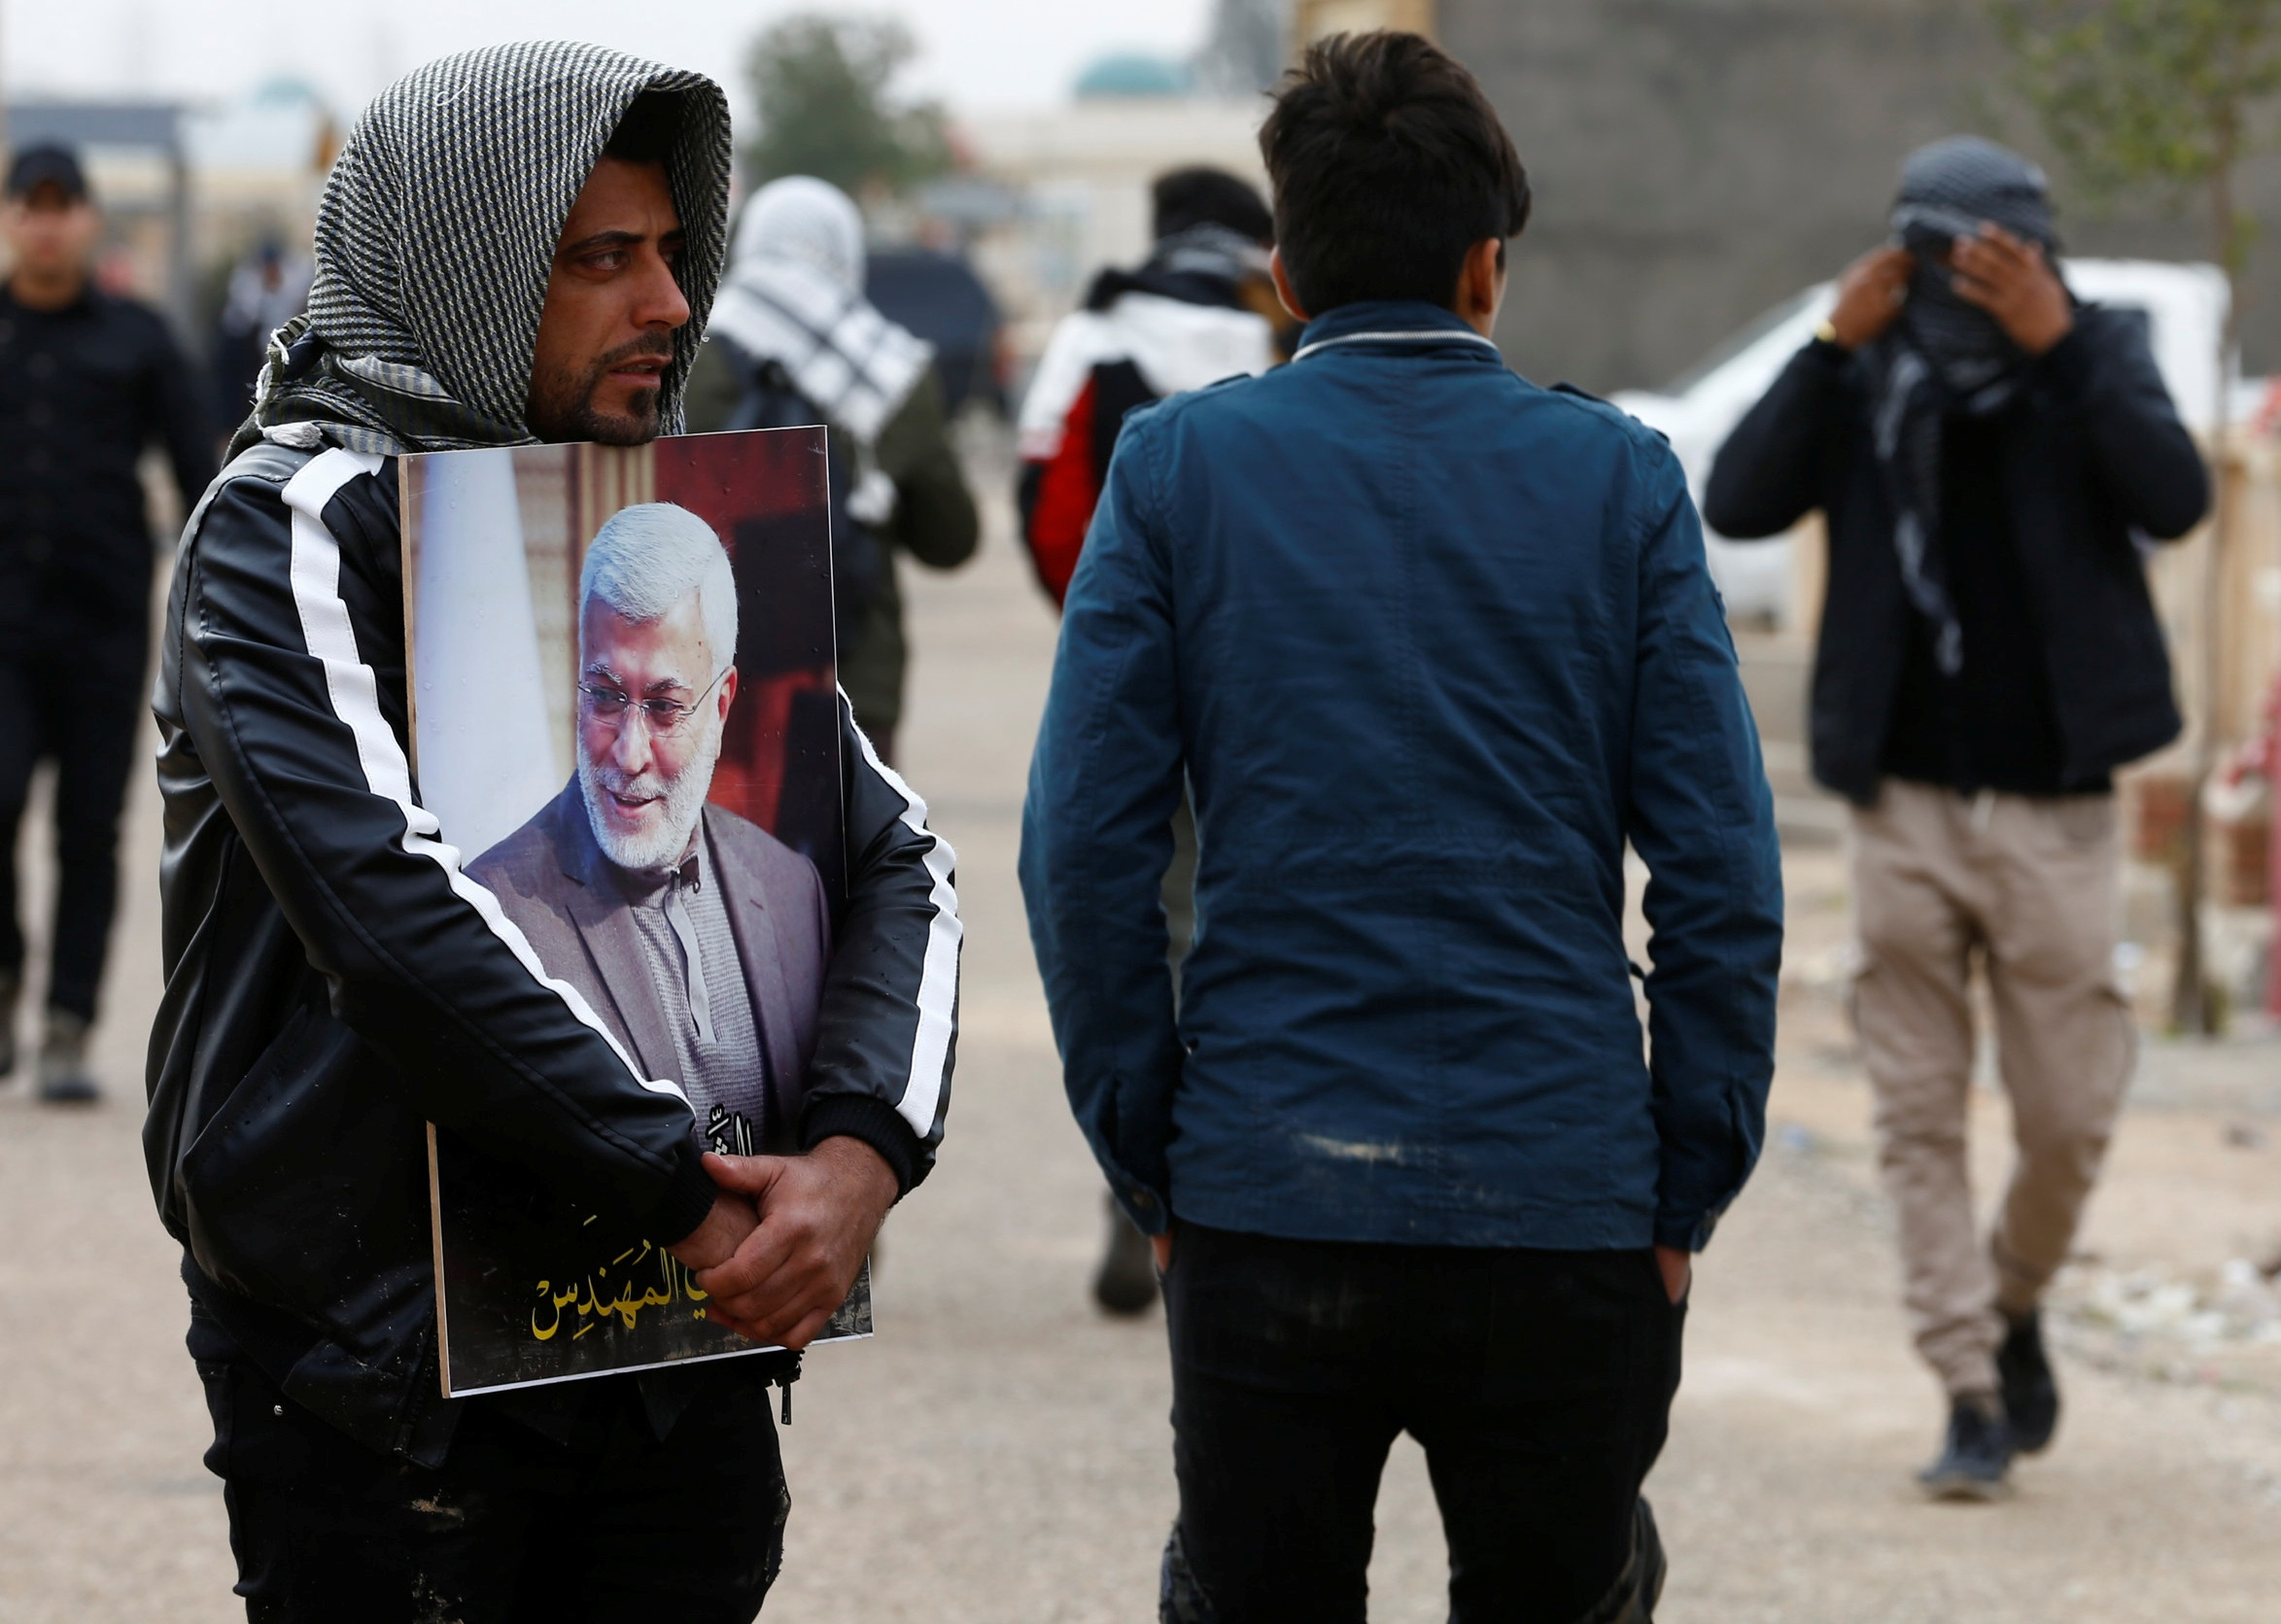 Mourners attend the burial of Iraqi militia commander Abu Mahdi al-Muhandis in Najaf on Wednesday (AFP)